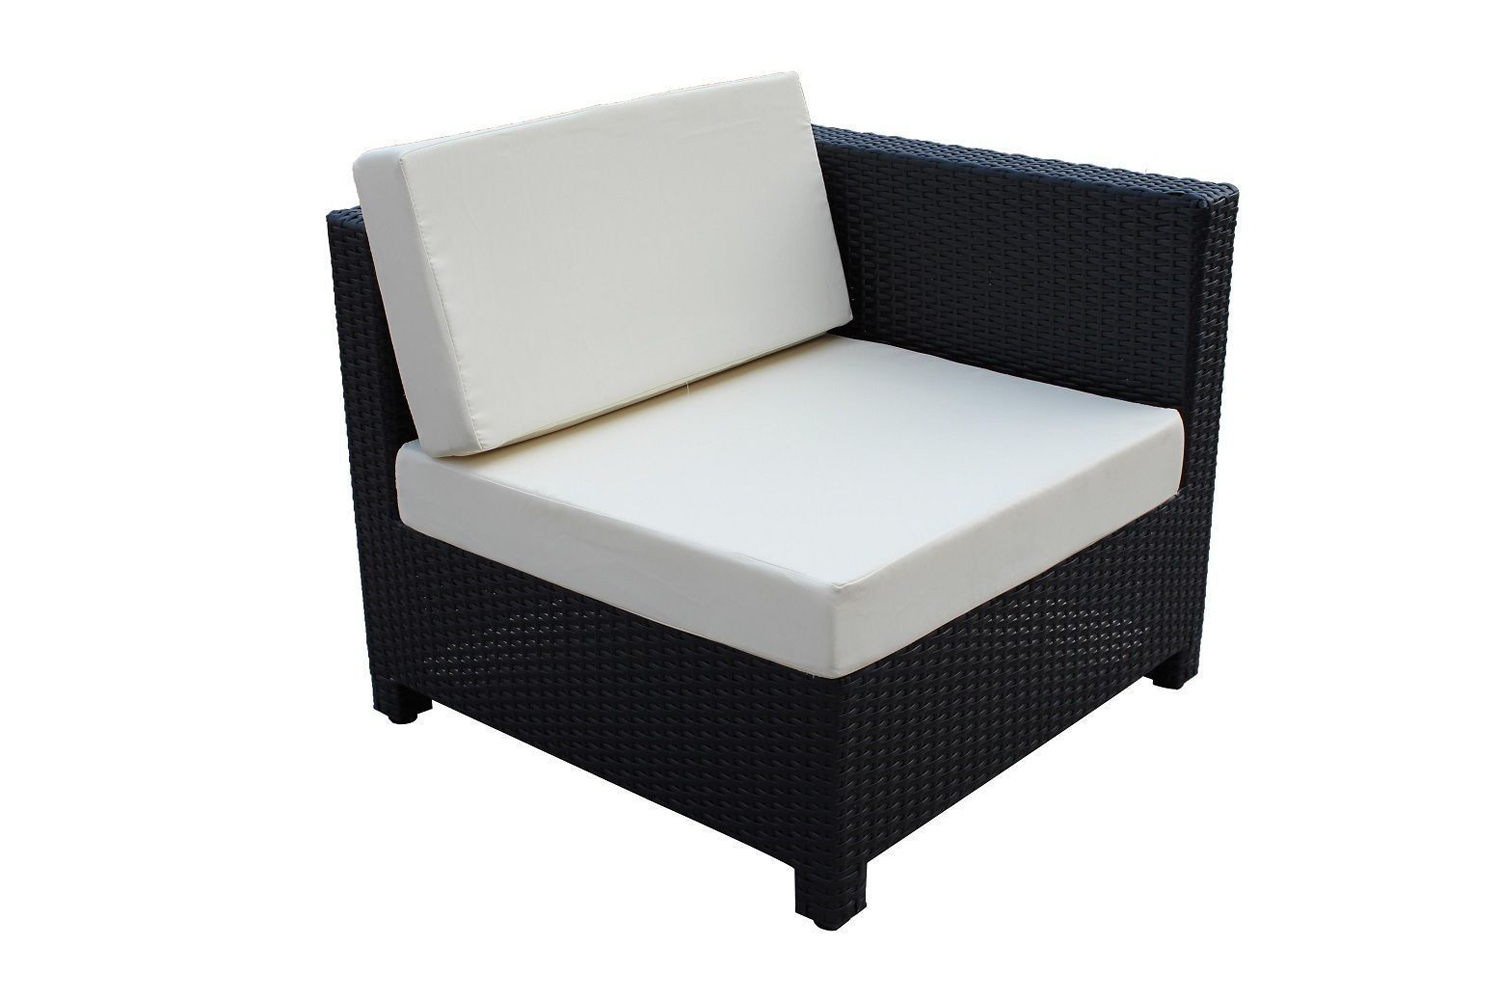 wicker patio sectional outdoor sofa furniture set white creme ebay